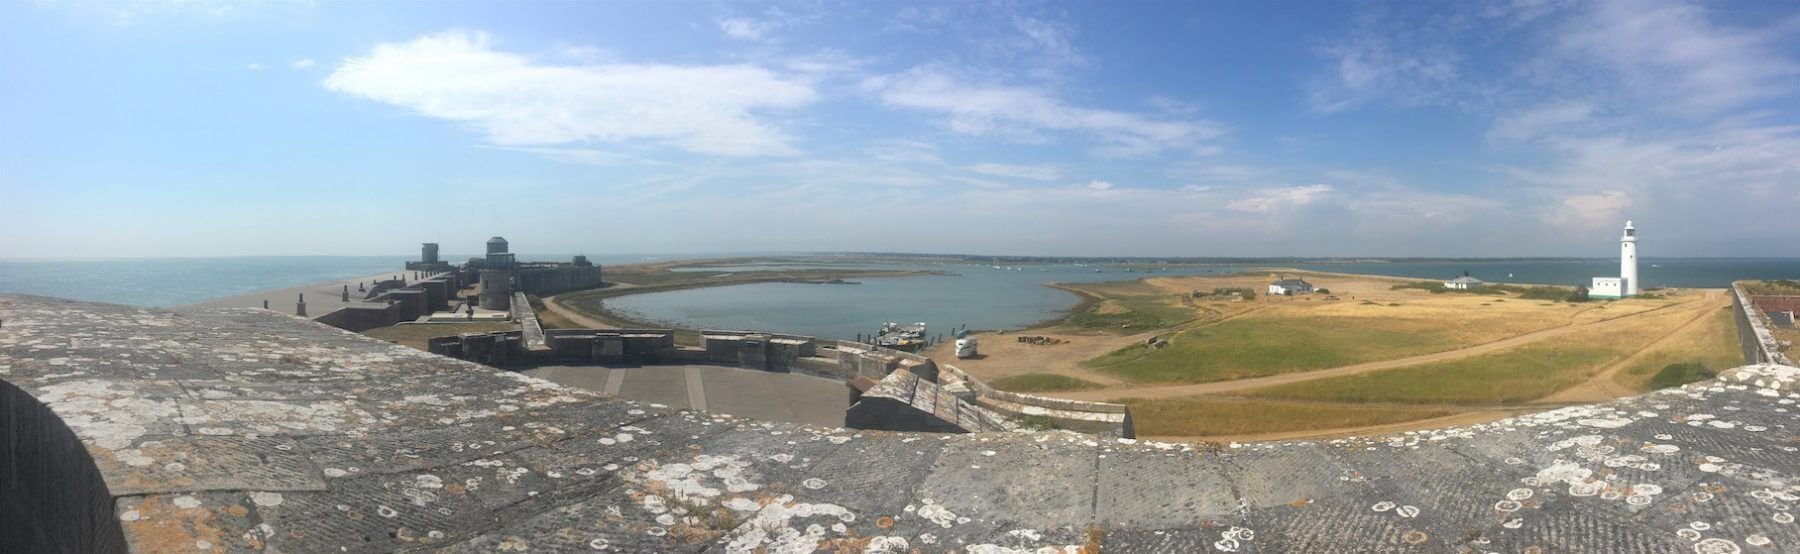 The view from the roof of Hurst Castle